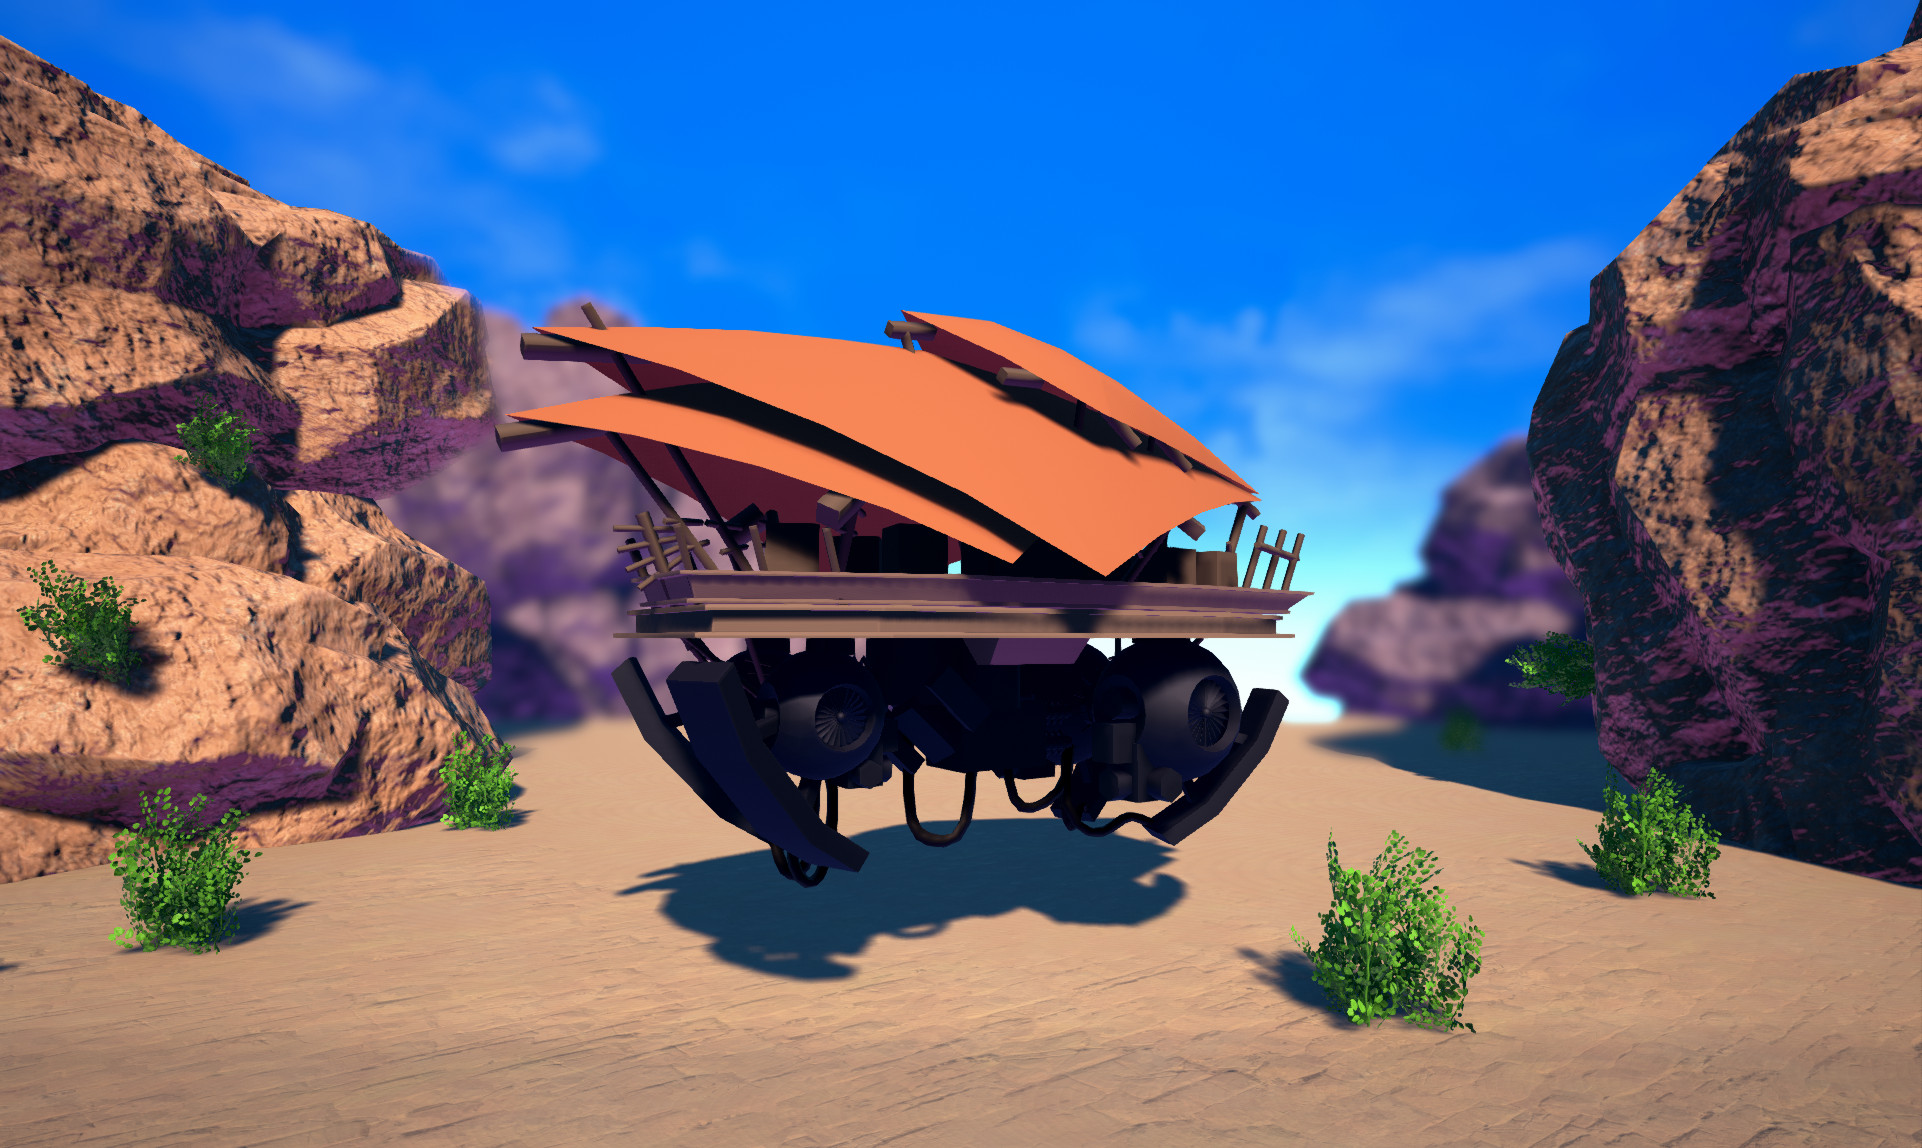 Ingame Render of hovering cargo-vehicle